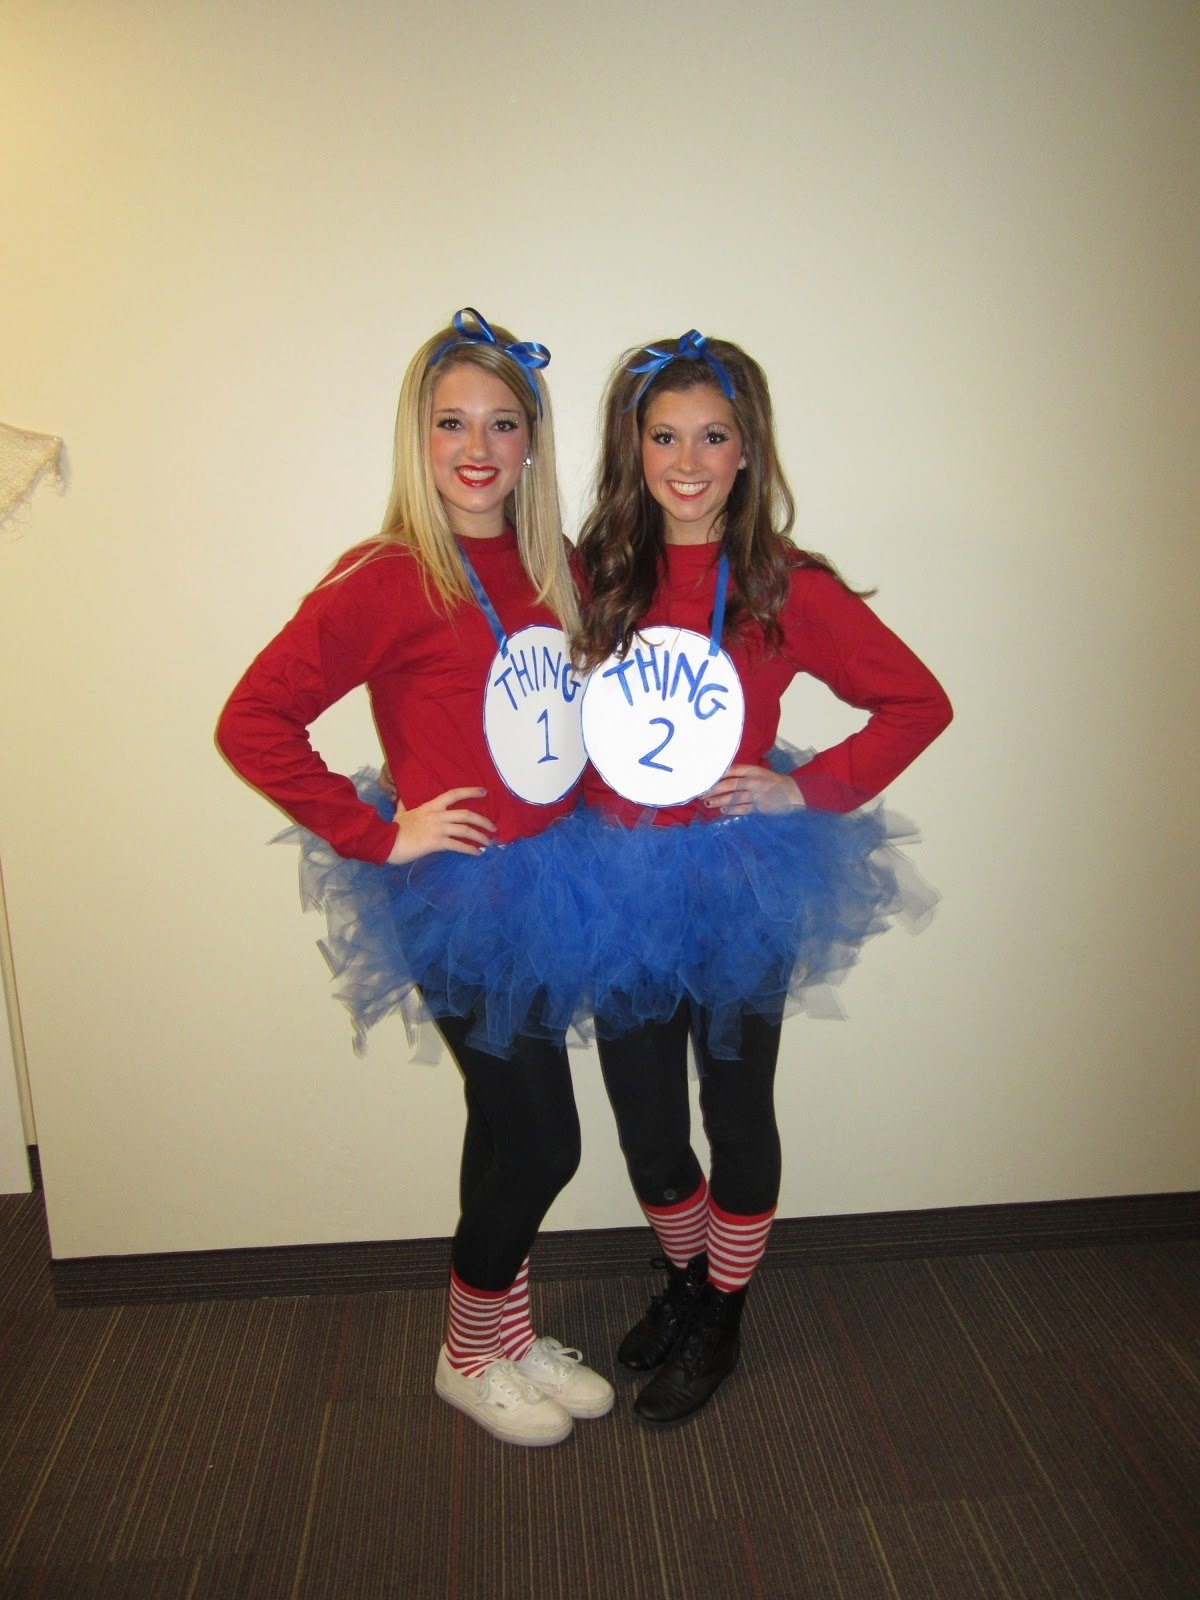 10 Cute Costume Ideas For 2 Girls images for thing one and thing two costumes halloween 7 2020